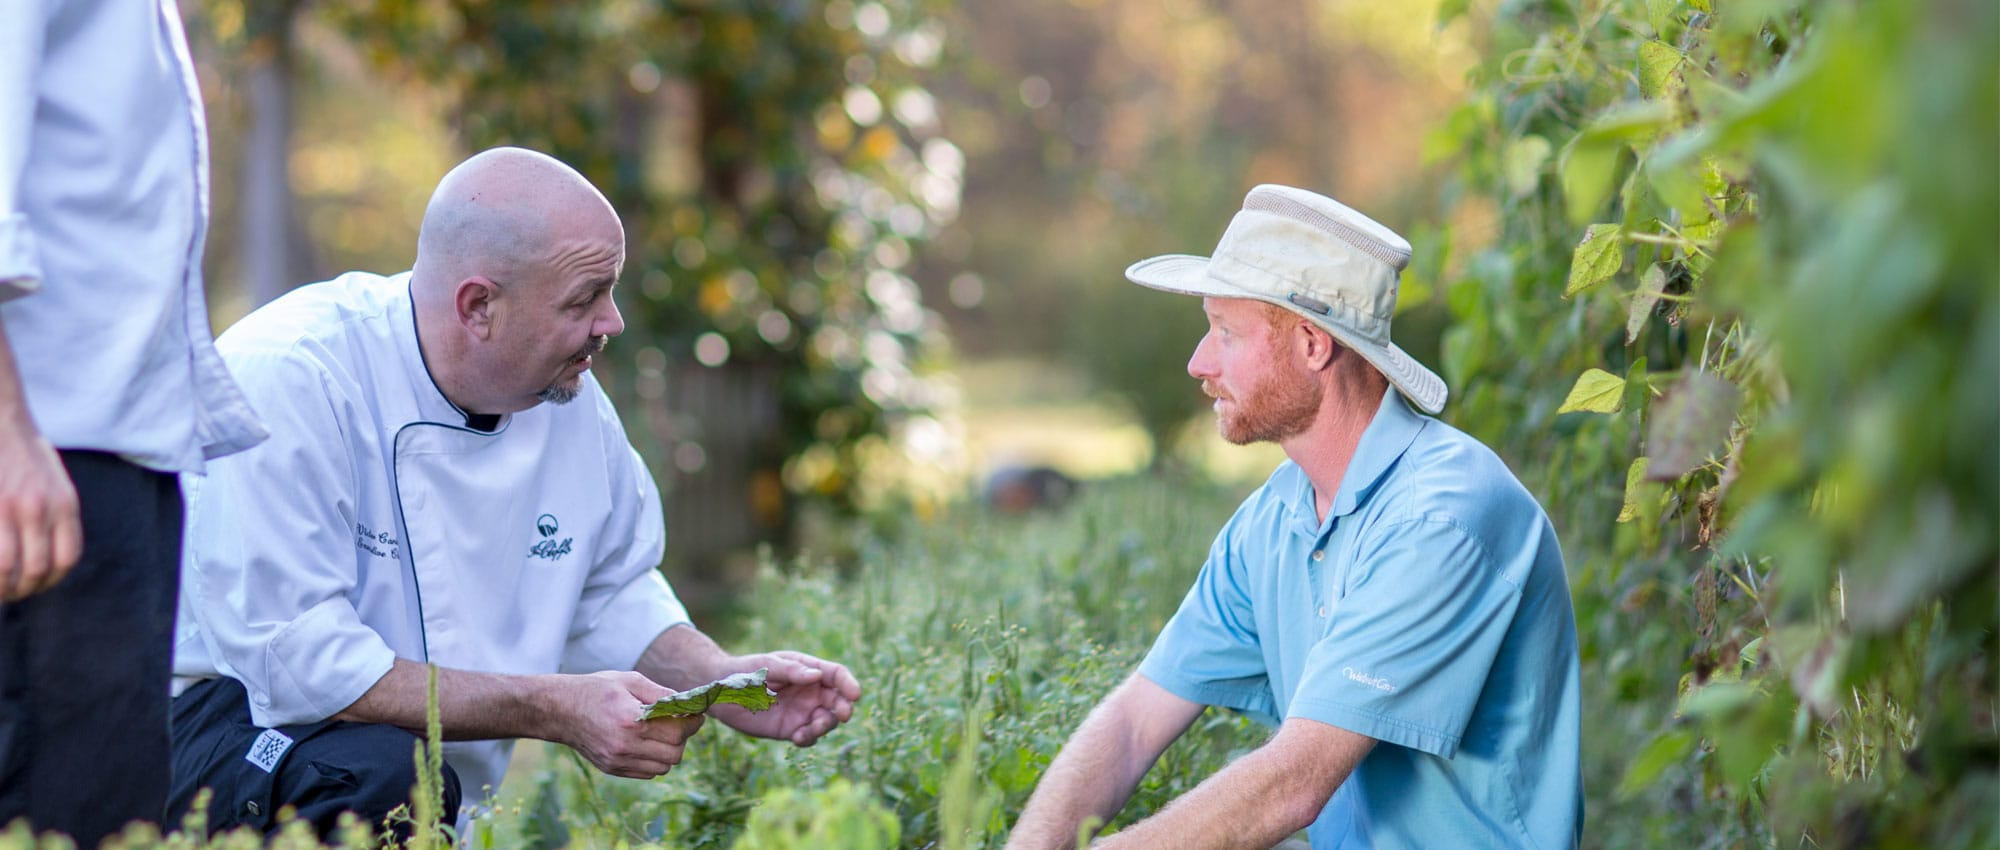 Executive Chef Victor Carducci and Craig Weiner, farmer of Broken Oaks Organic Farms